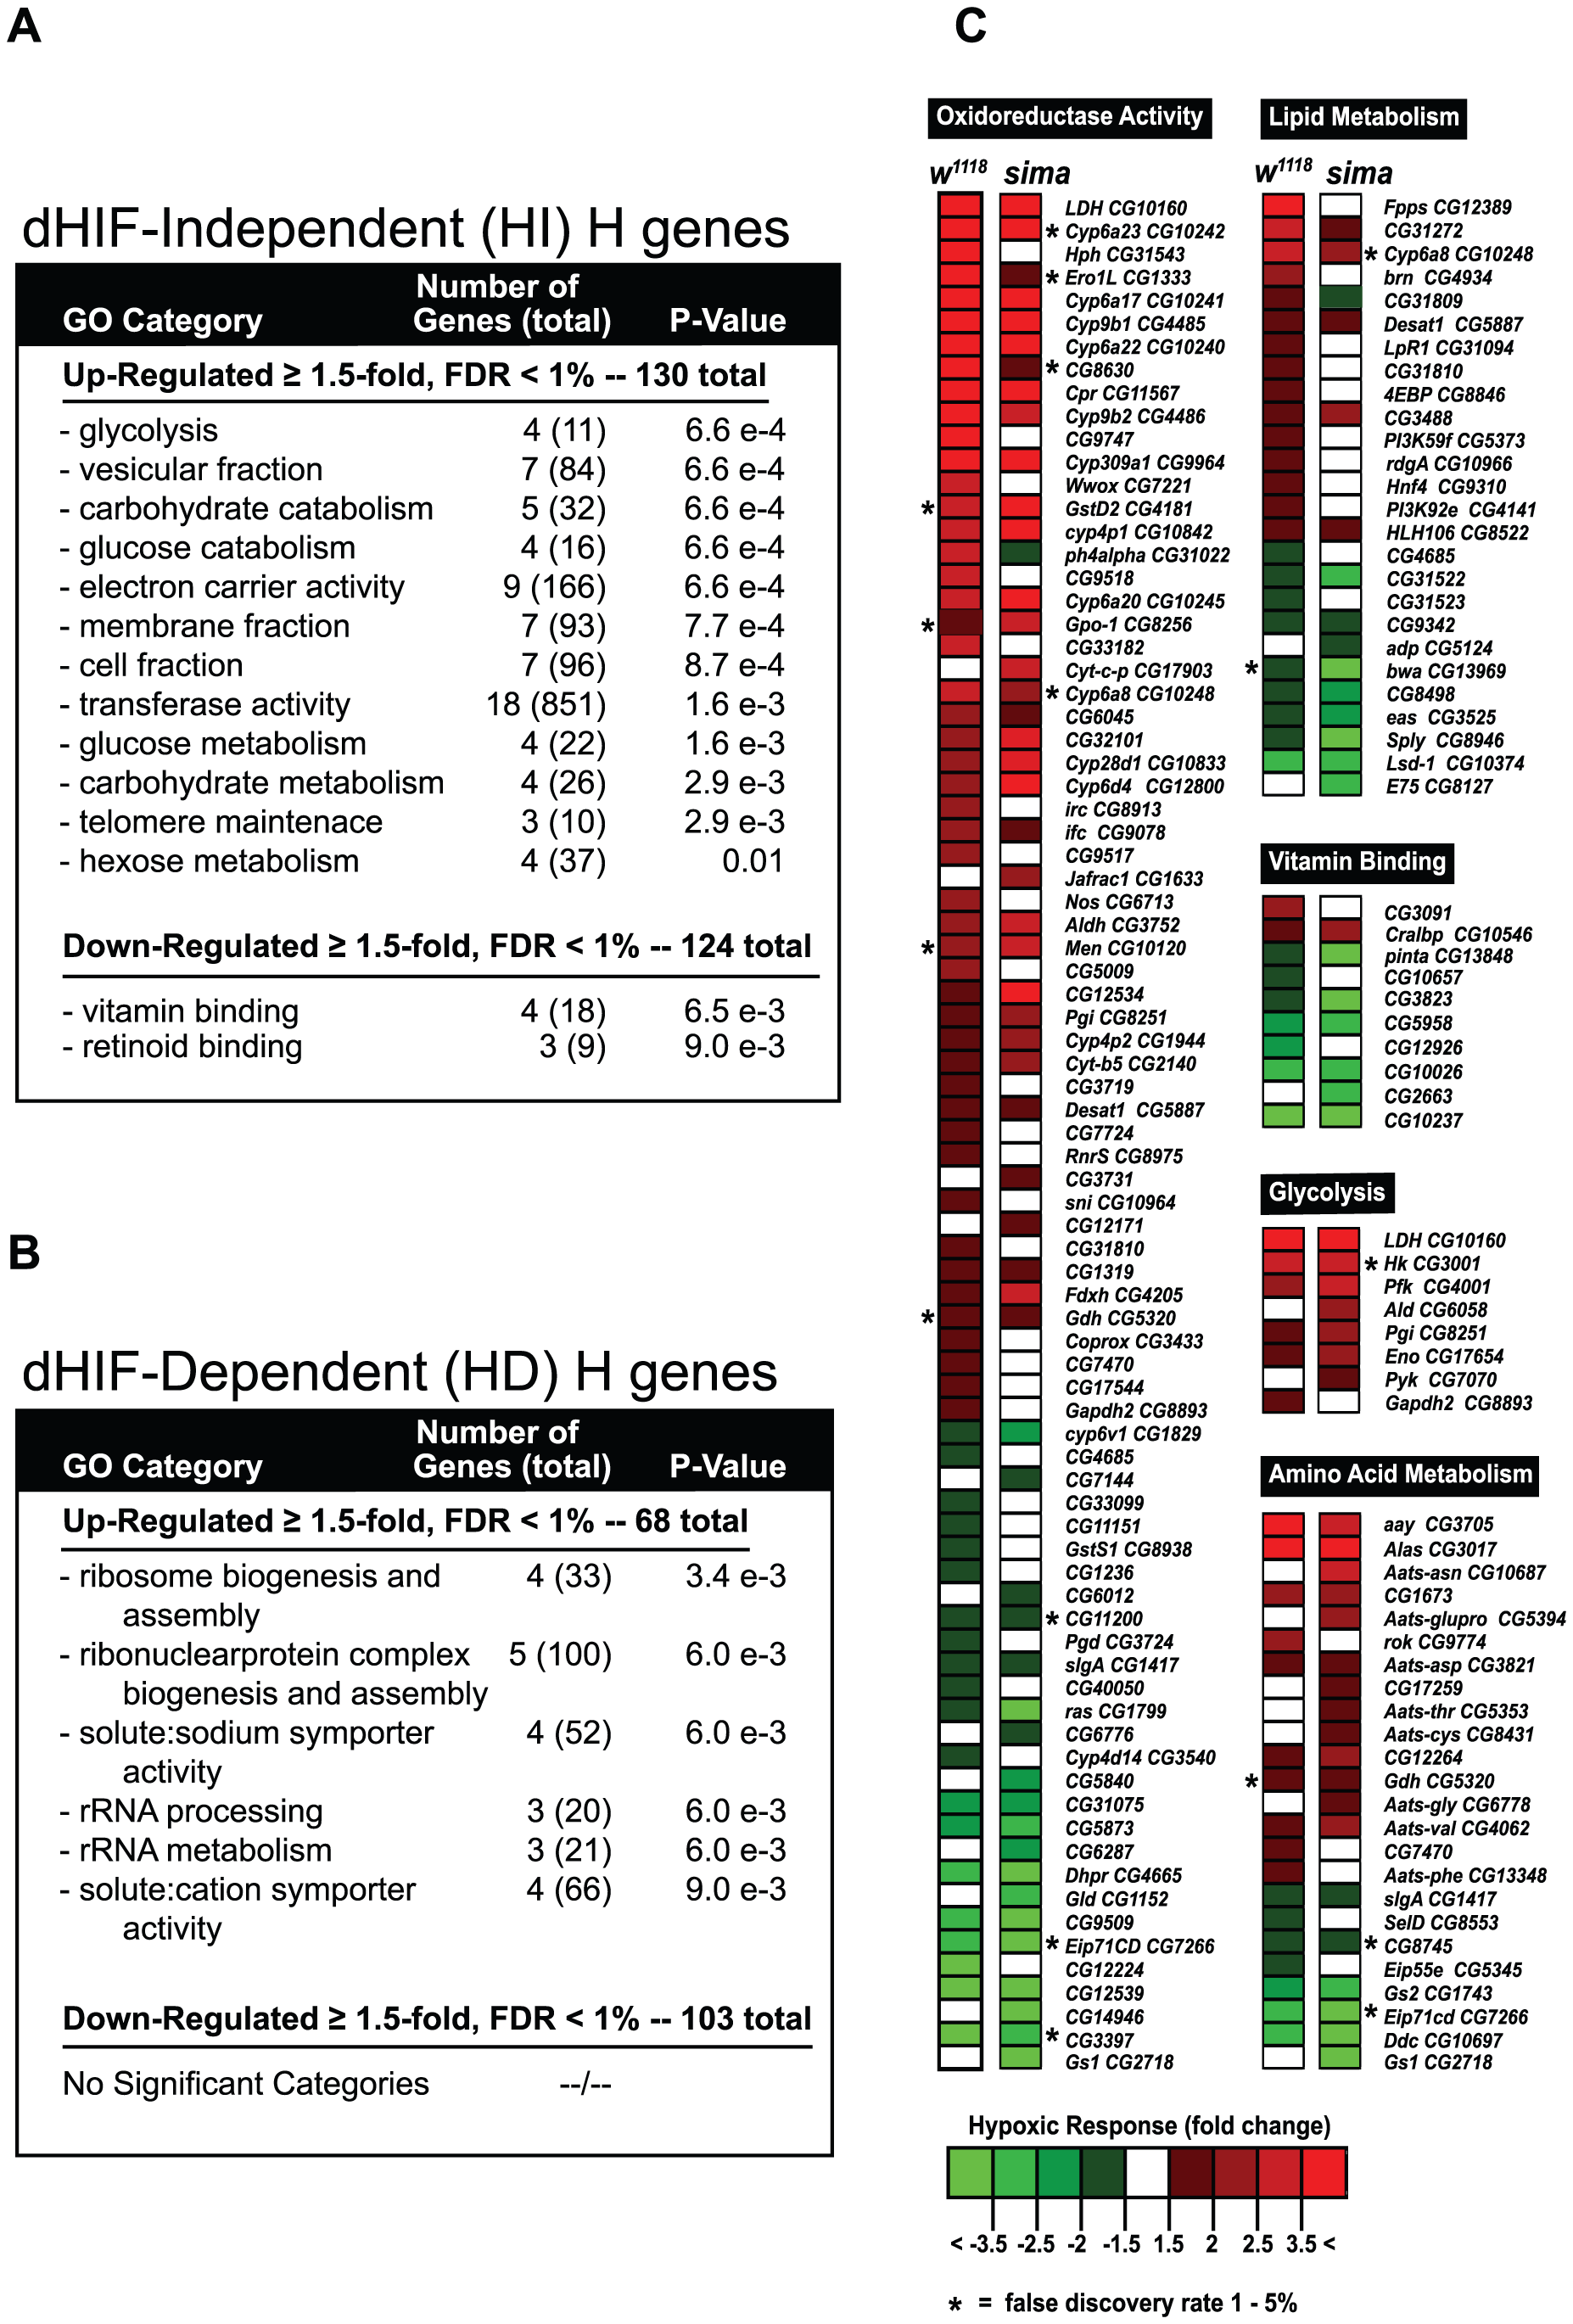 HIF-dependent and HIF-independent hypoxic response genes.